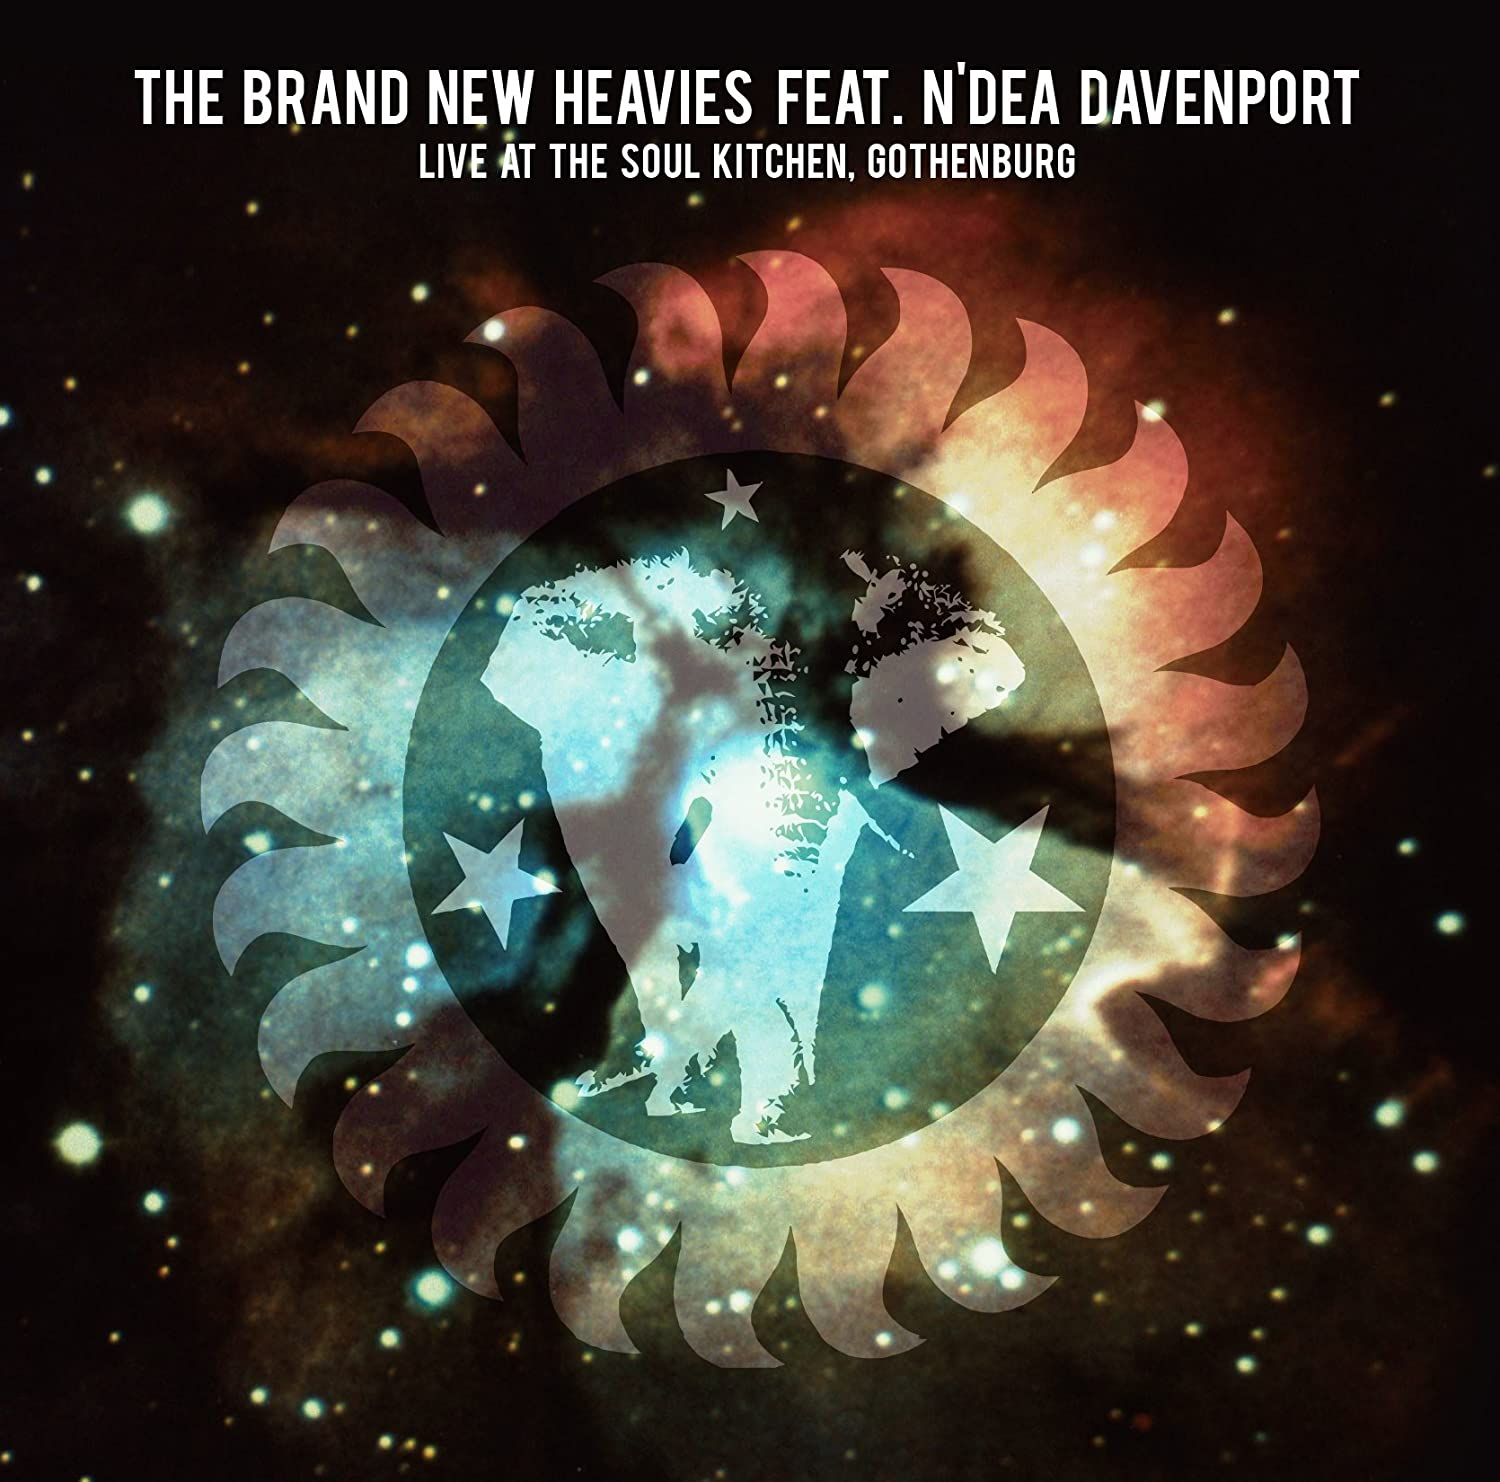 Brand New Heavies - LIVE AT THE SOUL KITCHEN - Amazon.com Music